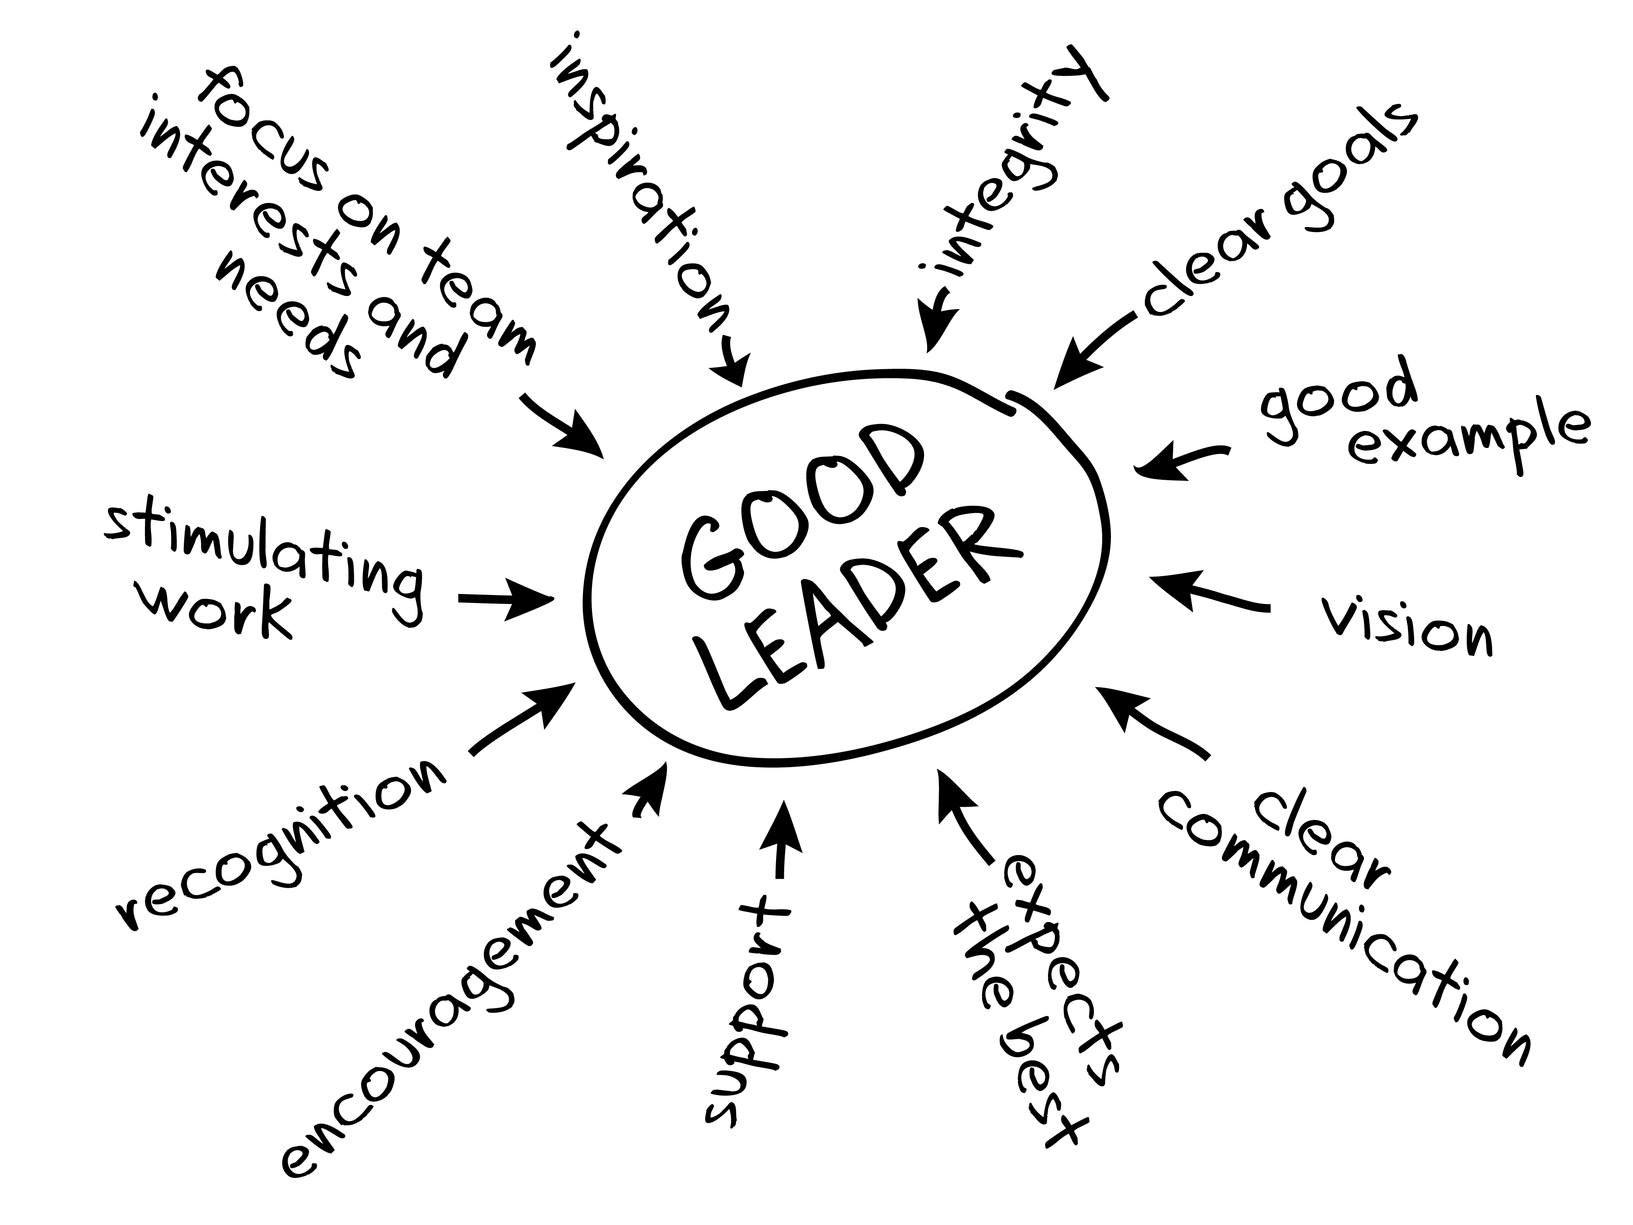 Features of a good leader